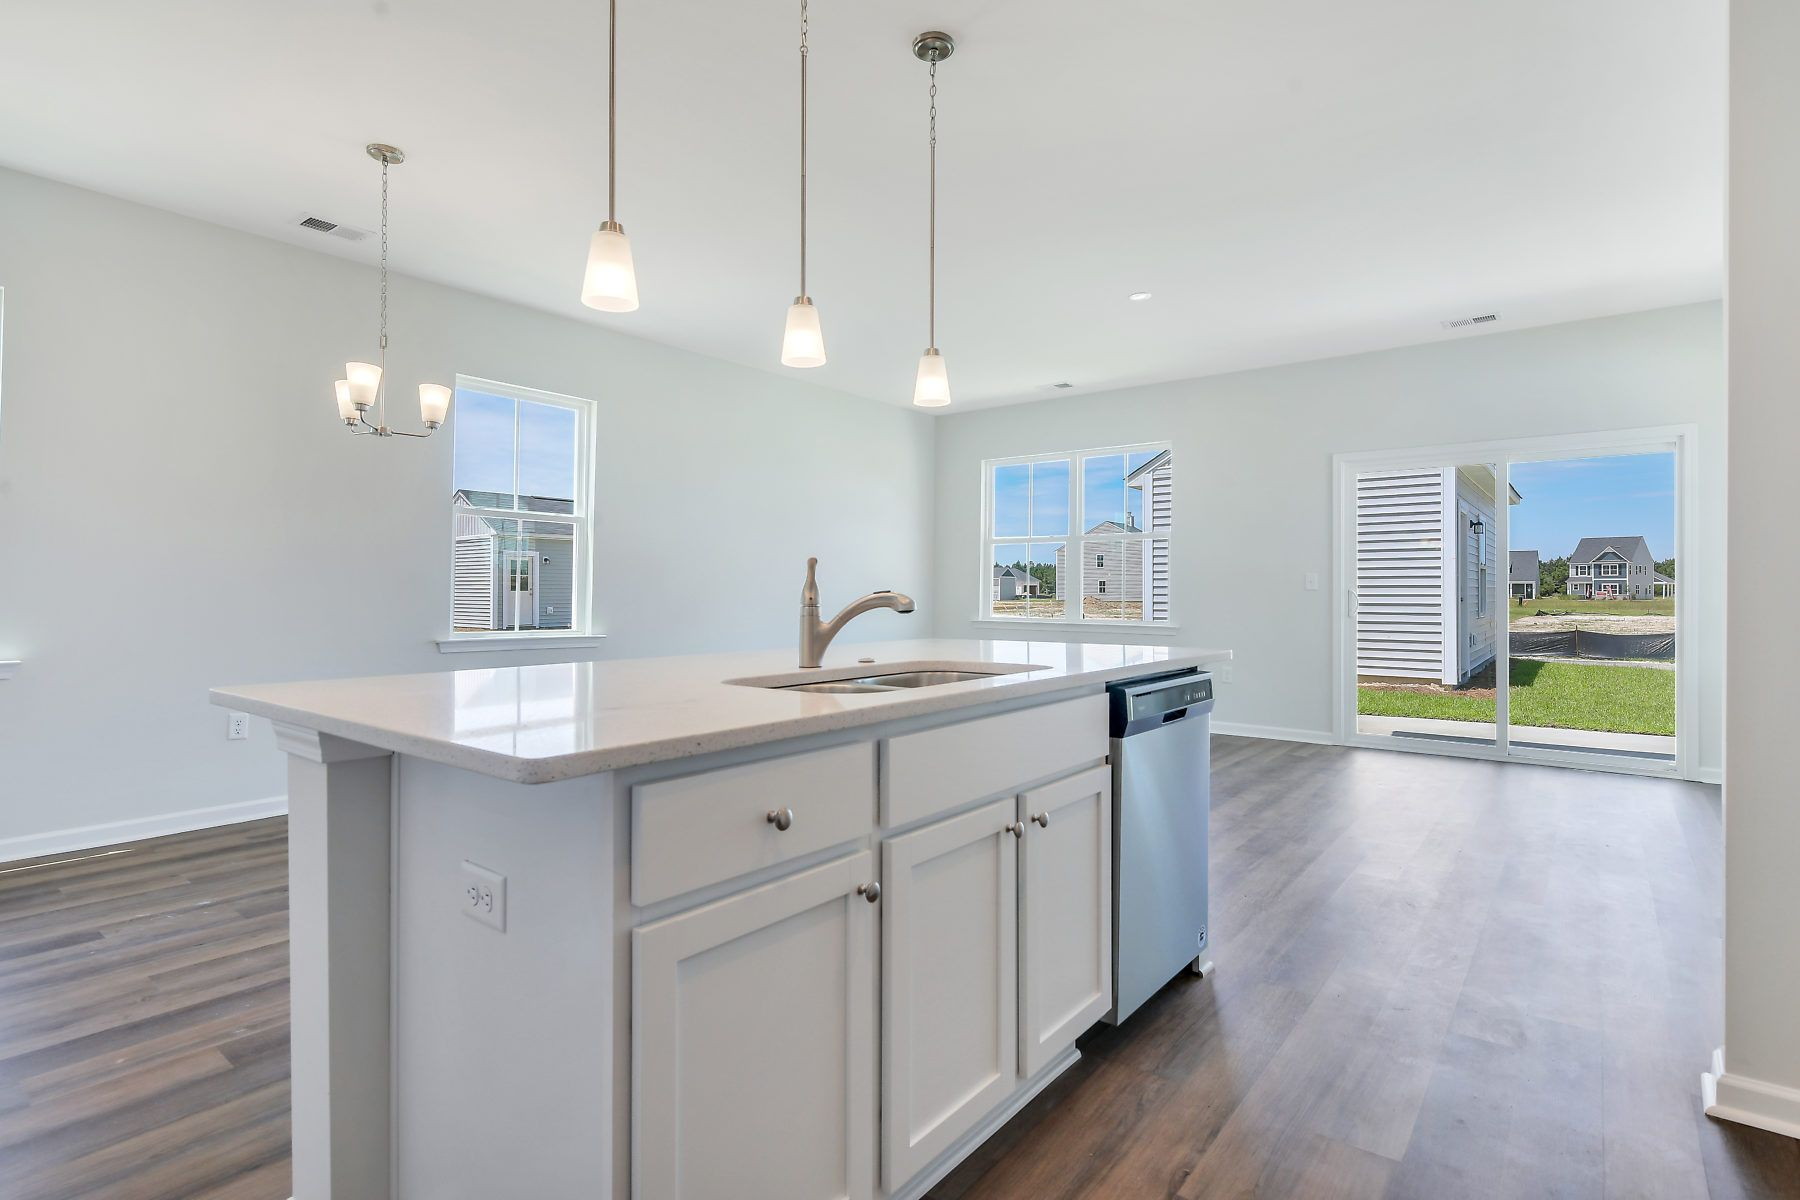 Kitchen featured in The Helmsley By Village Park Homes in Hilton Head, SC